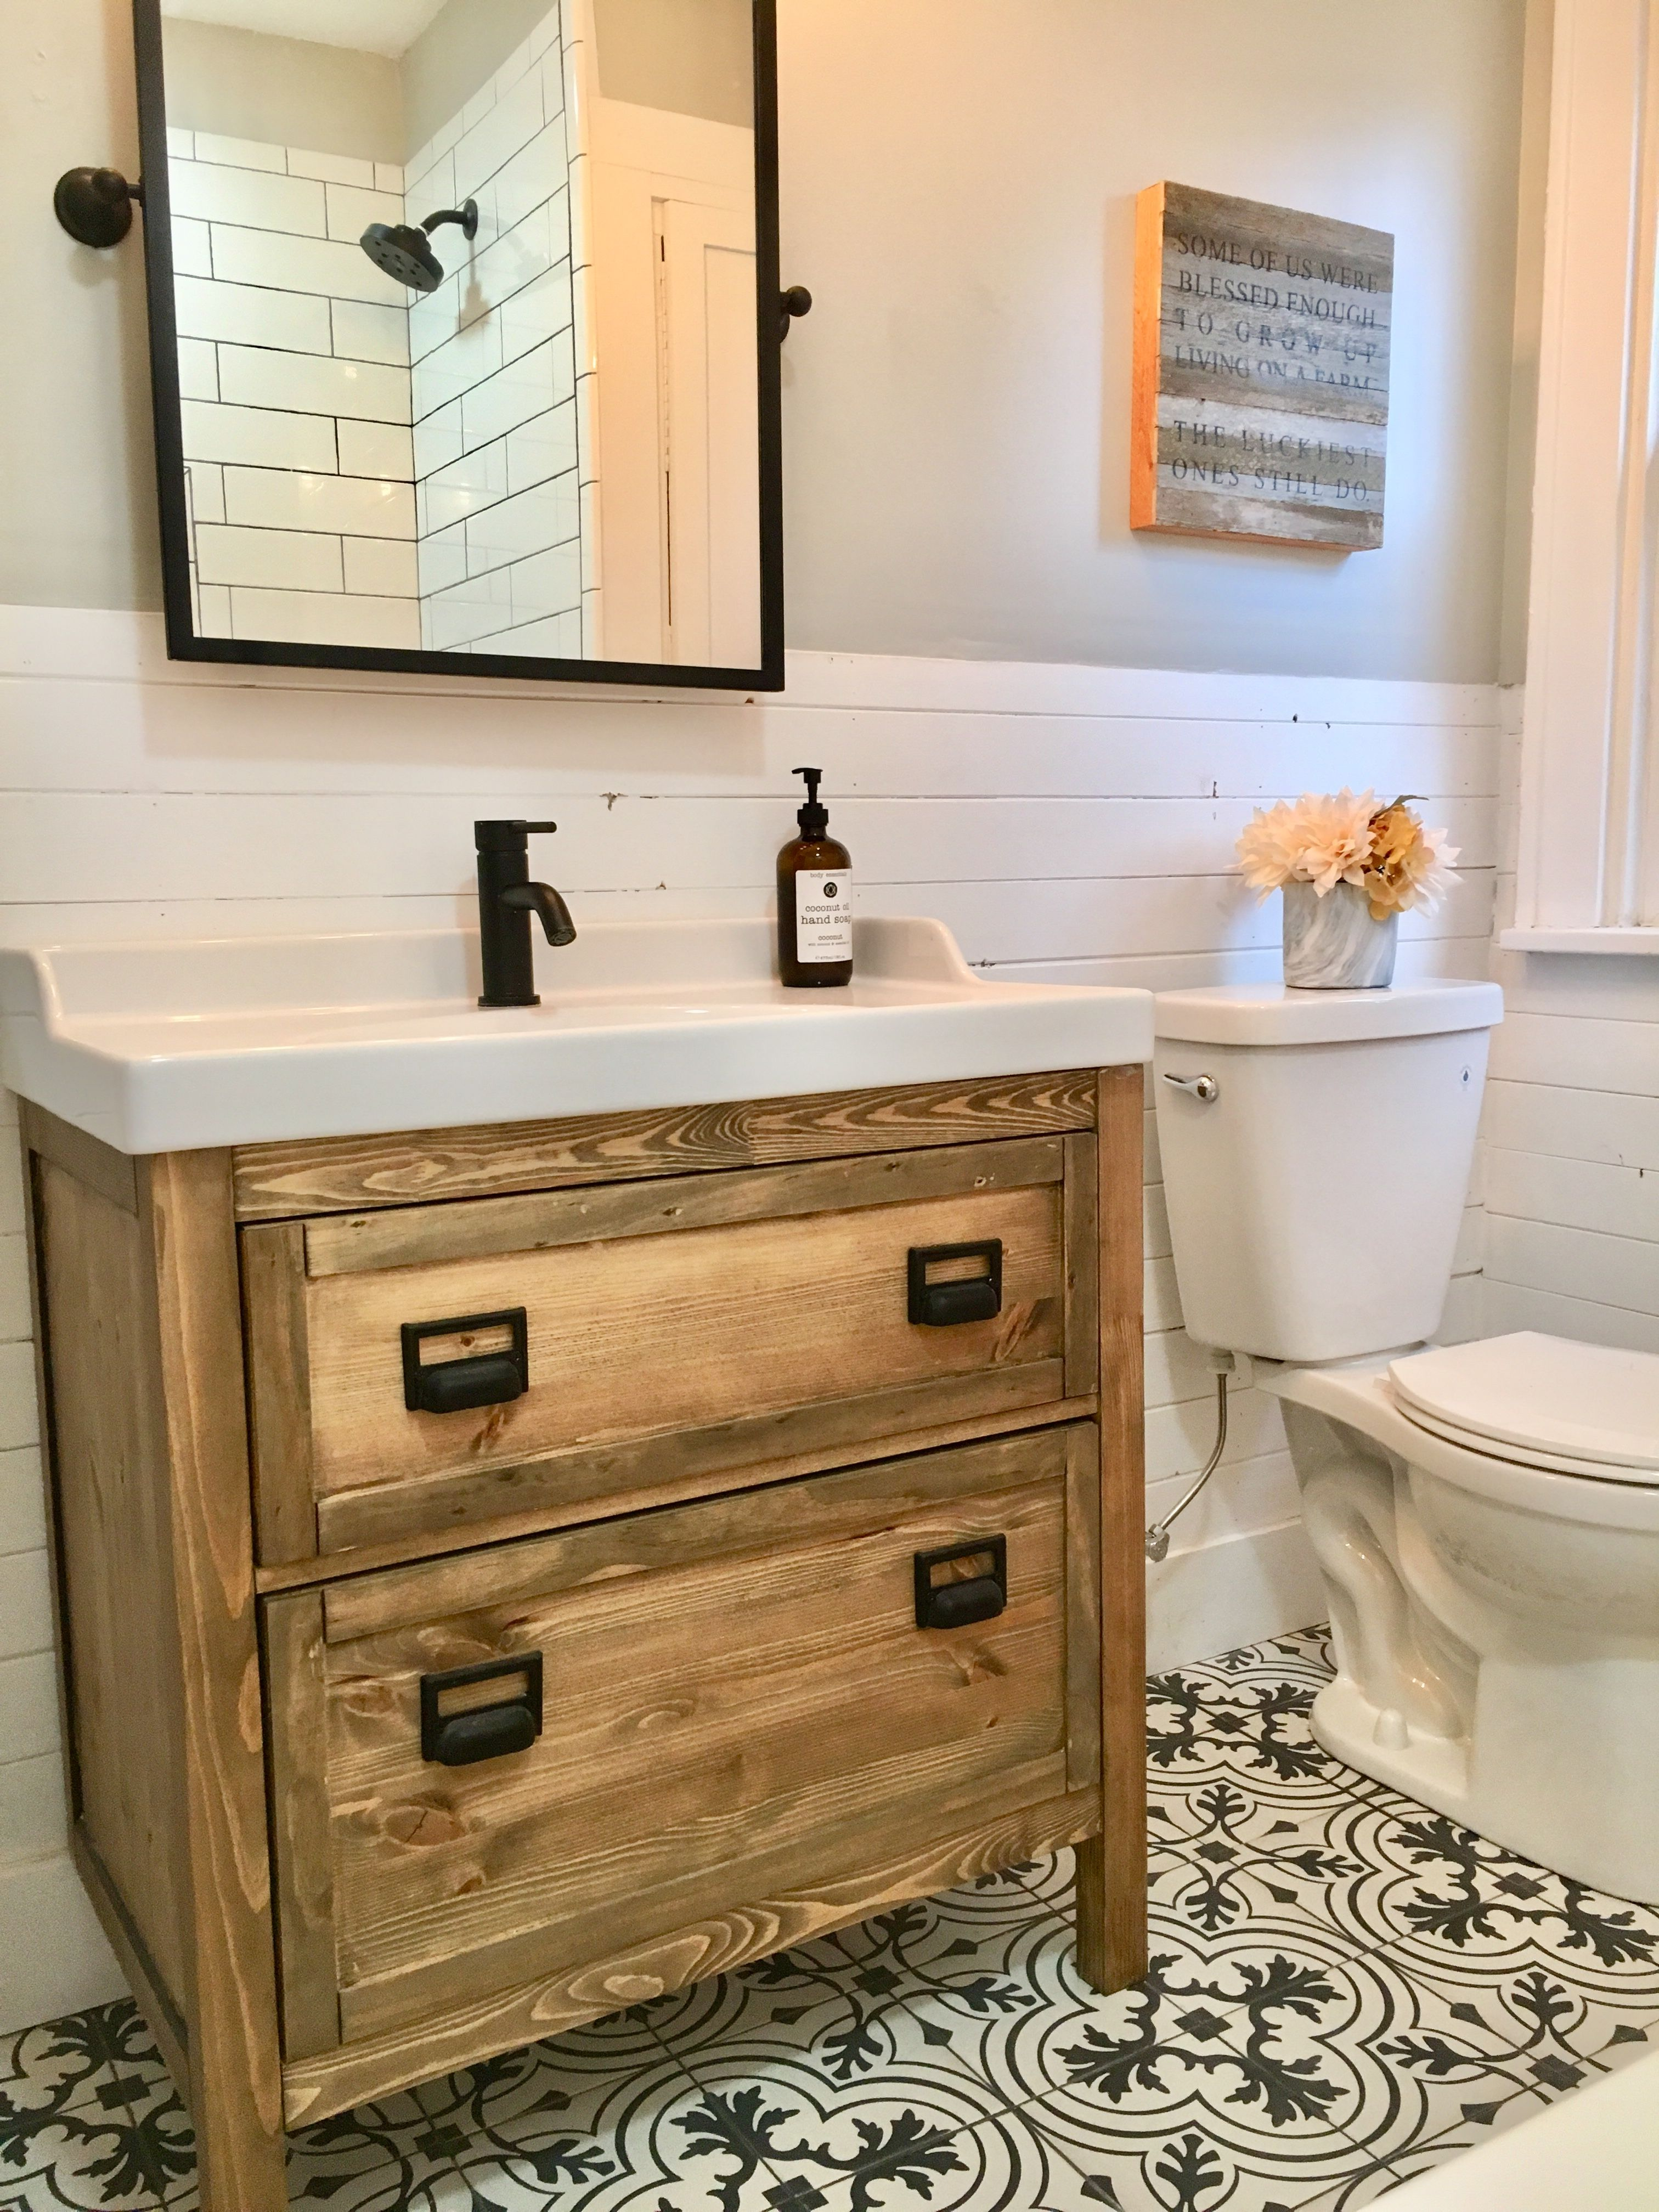 Stupendous Farmhouse Style Bathroom By Blankspace Llc Pittsburgh Pa Interior Design Ideas Grebswwsoteloinfo